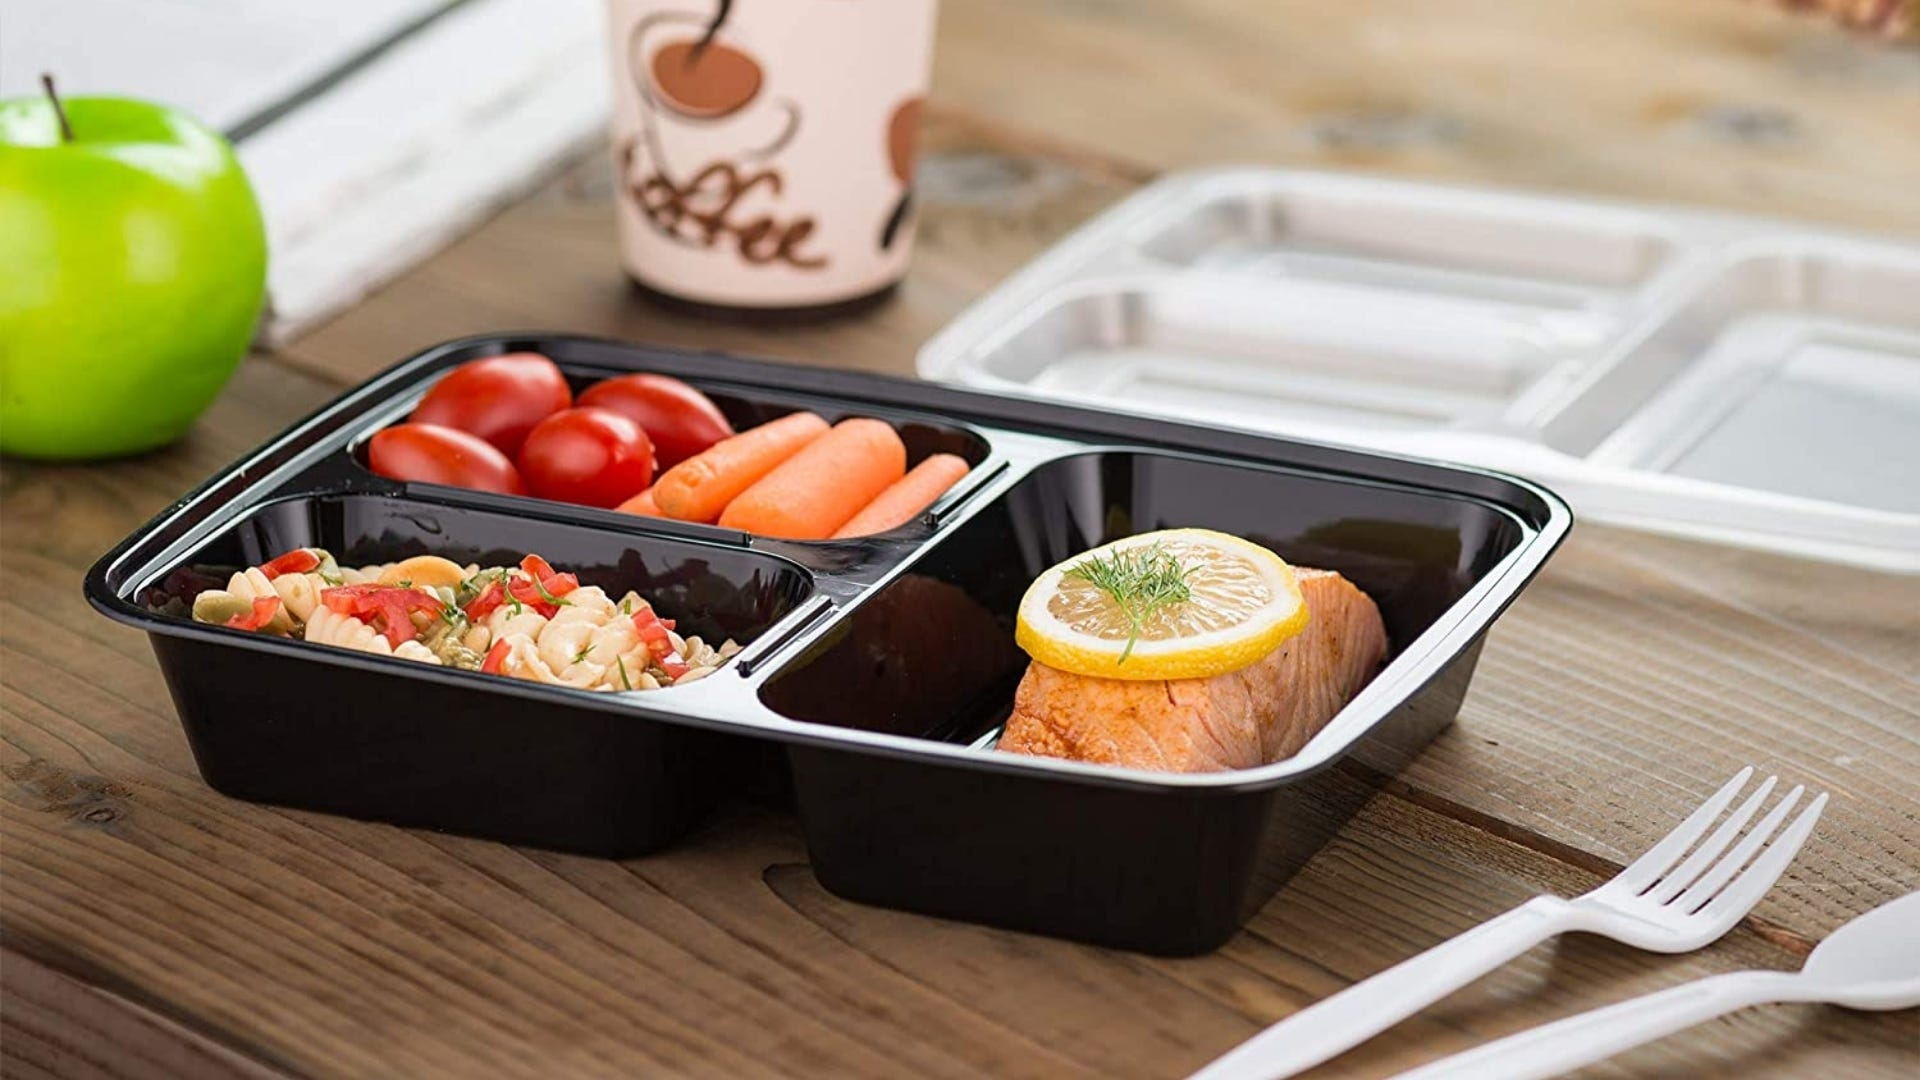 Food container with three compartments